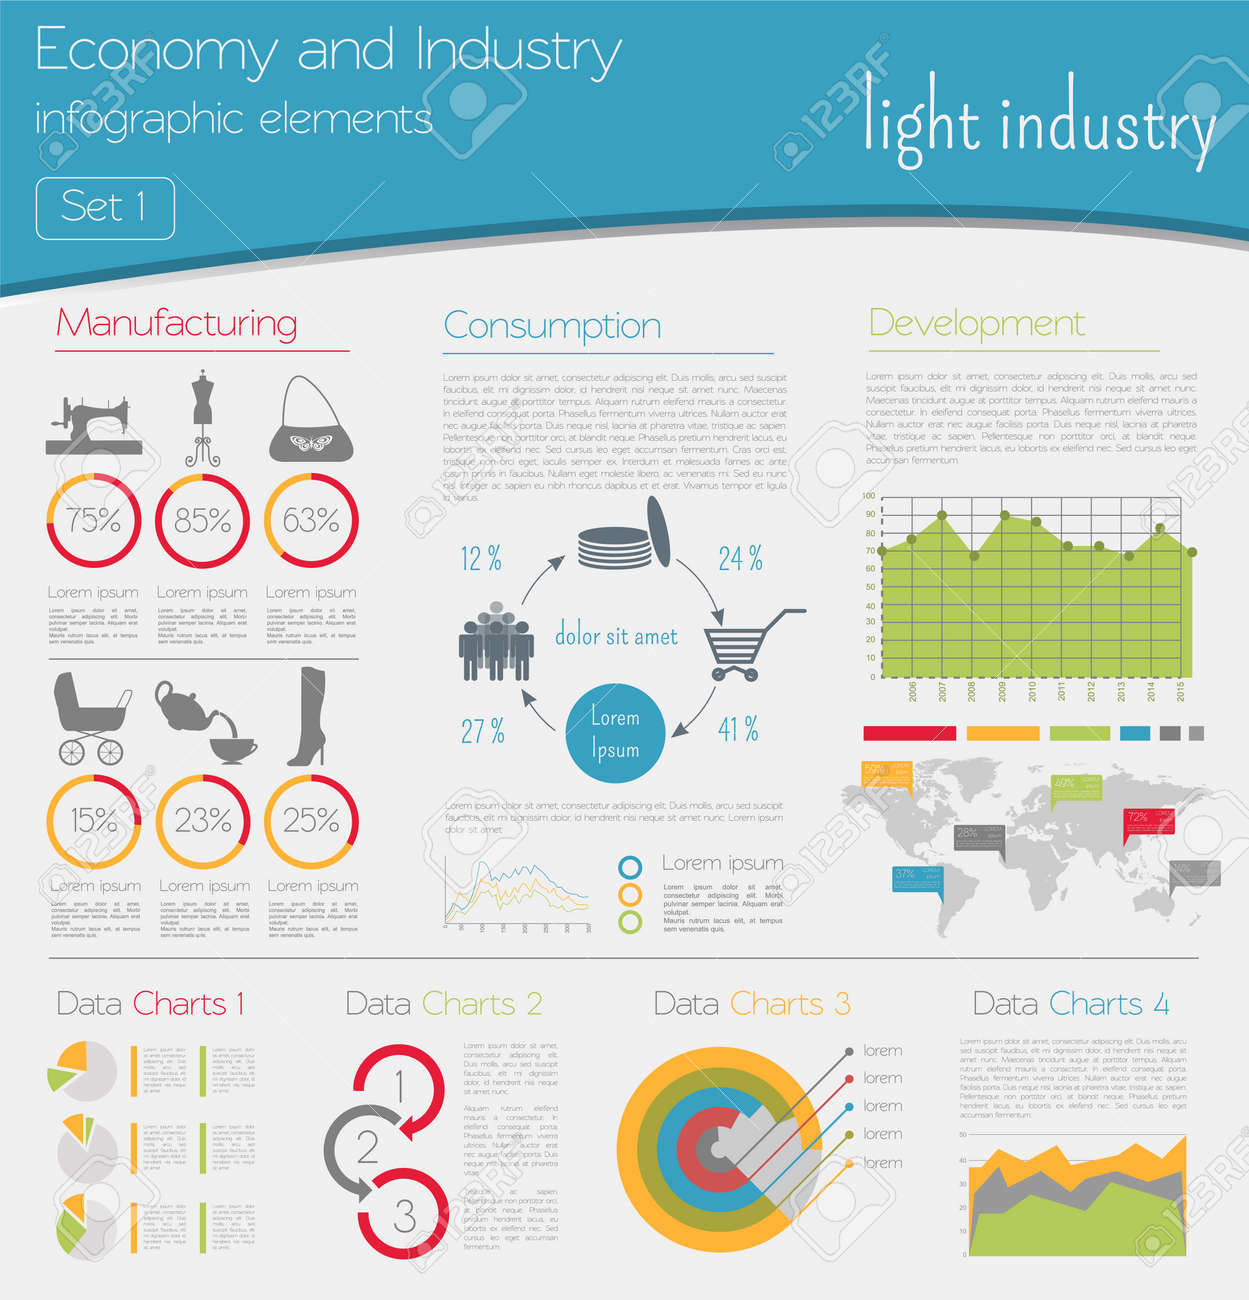 Economy And Industry. Light Industry. Industrial Infographic Template.  Vector Illustration Stock Vector